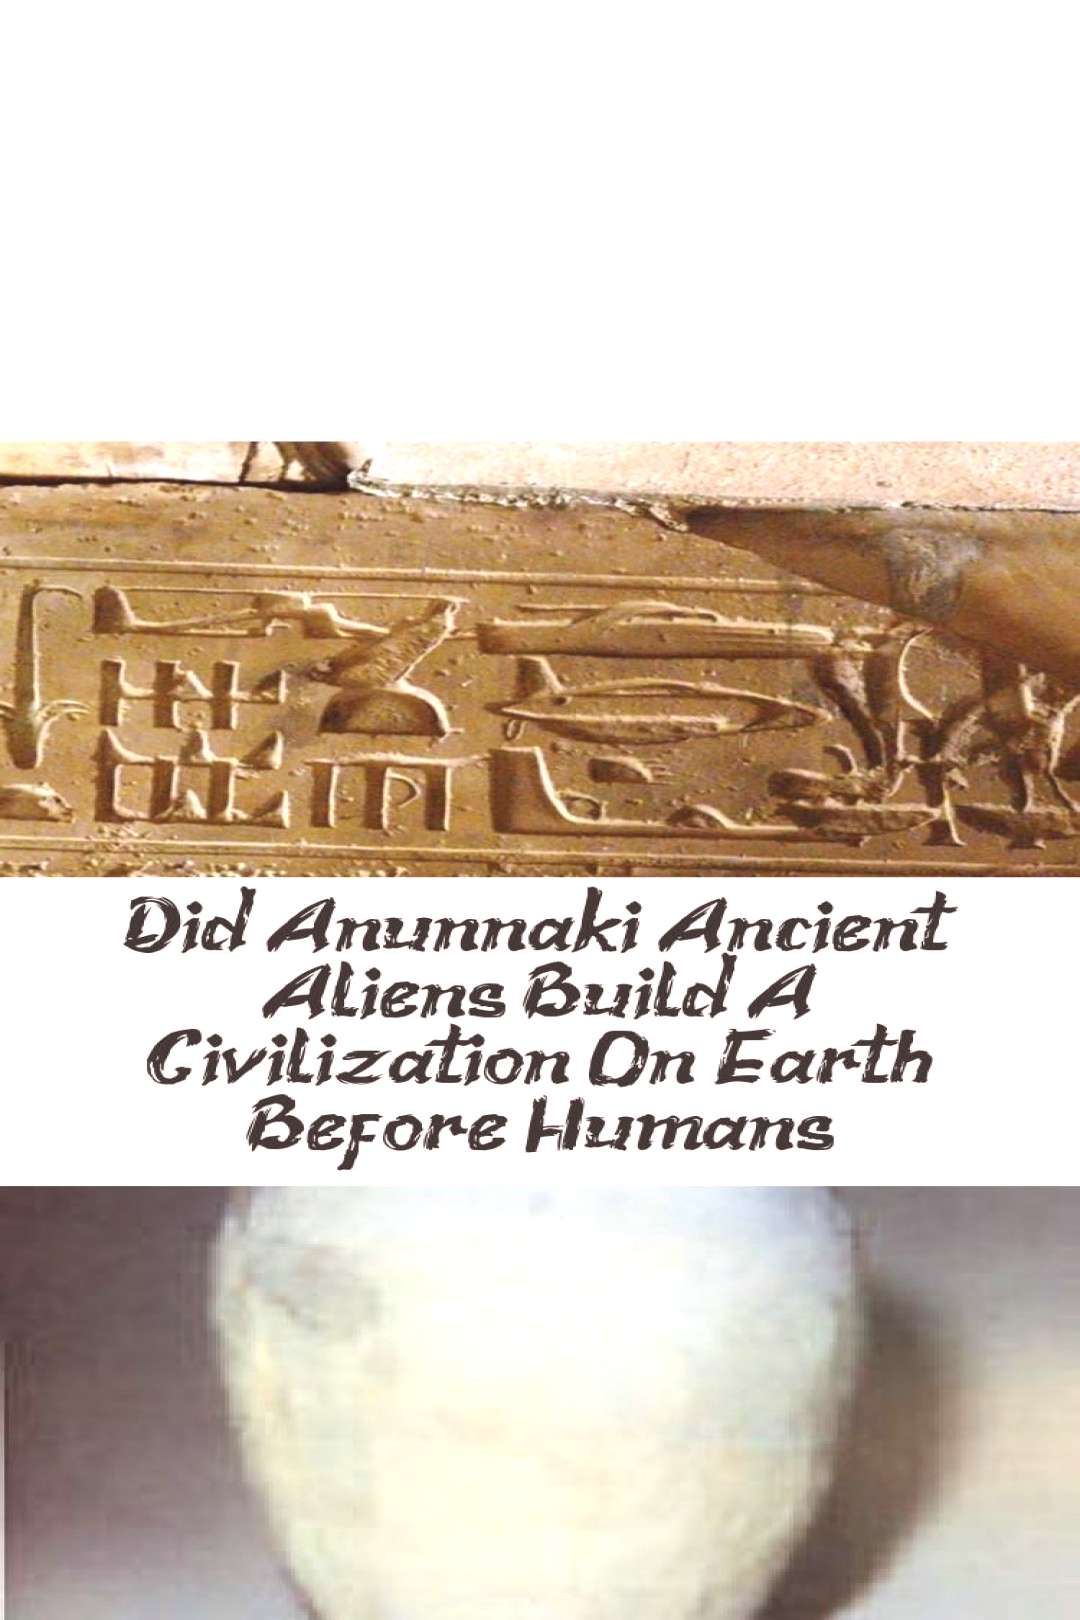 Did Anunnaki Ancient Aliens Build A Civilization On Earth Before Humans? - Architecture - Ancient A